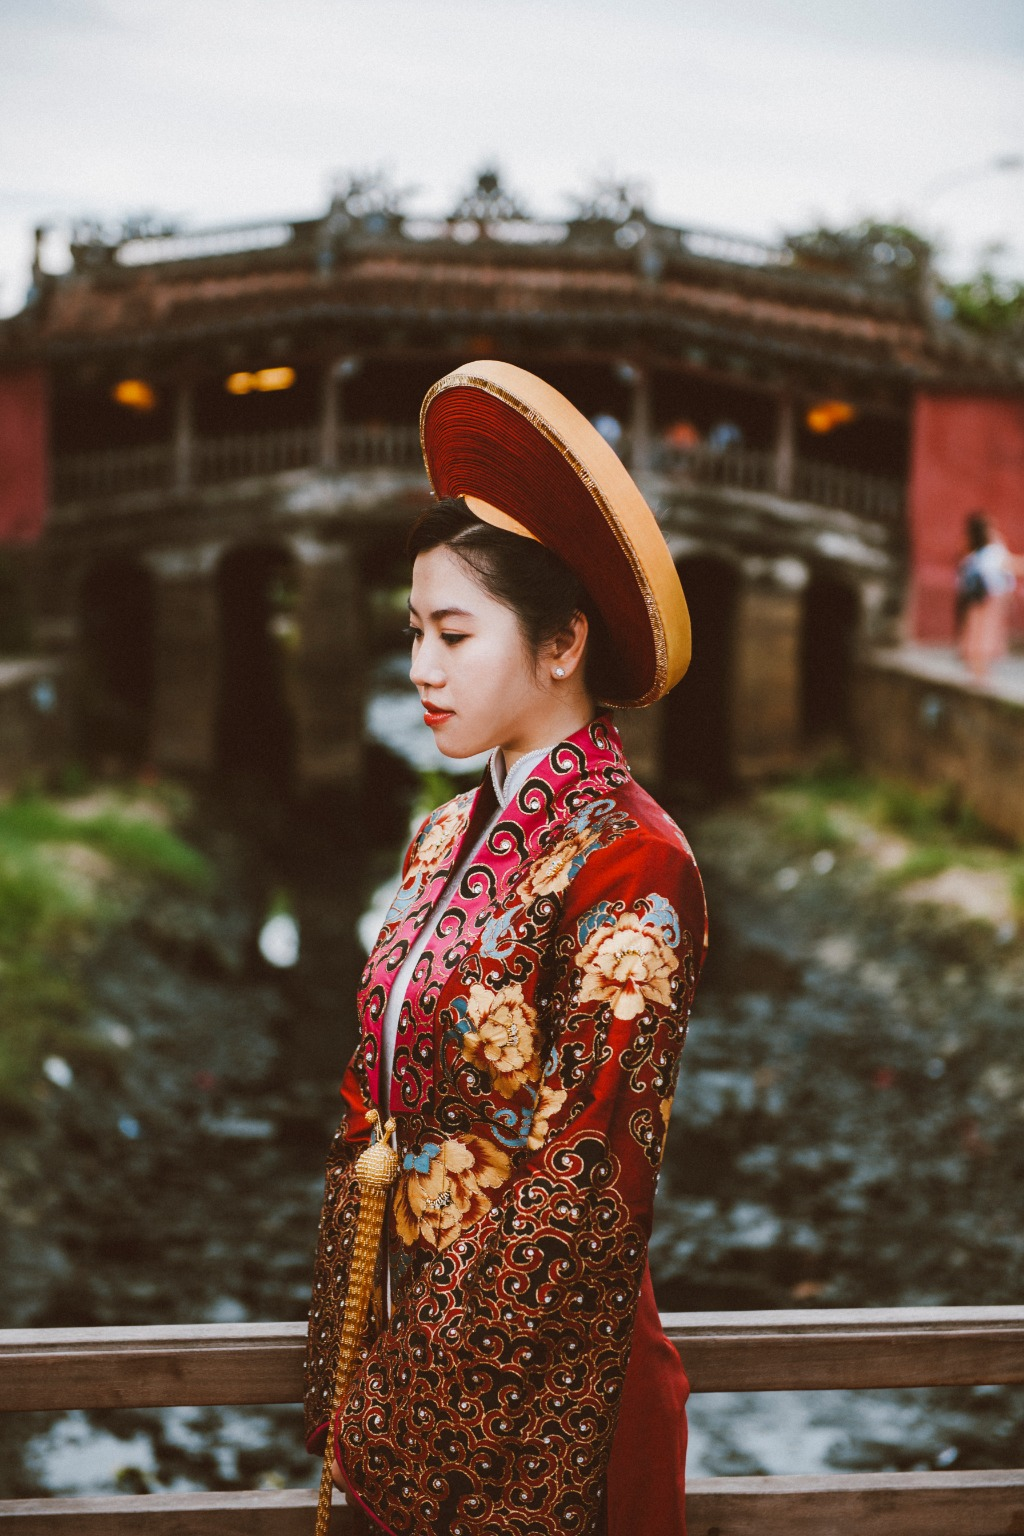 Gogerous traditional wedding dress in Vietnam. You want to try it on at your destination wedding in our country? Book a free consultation